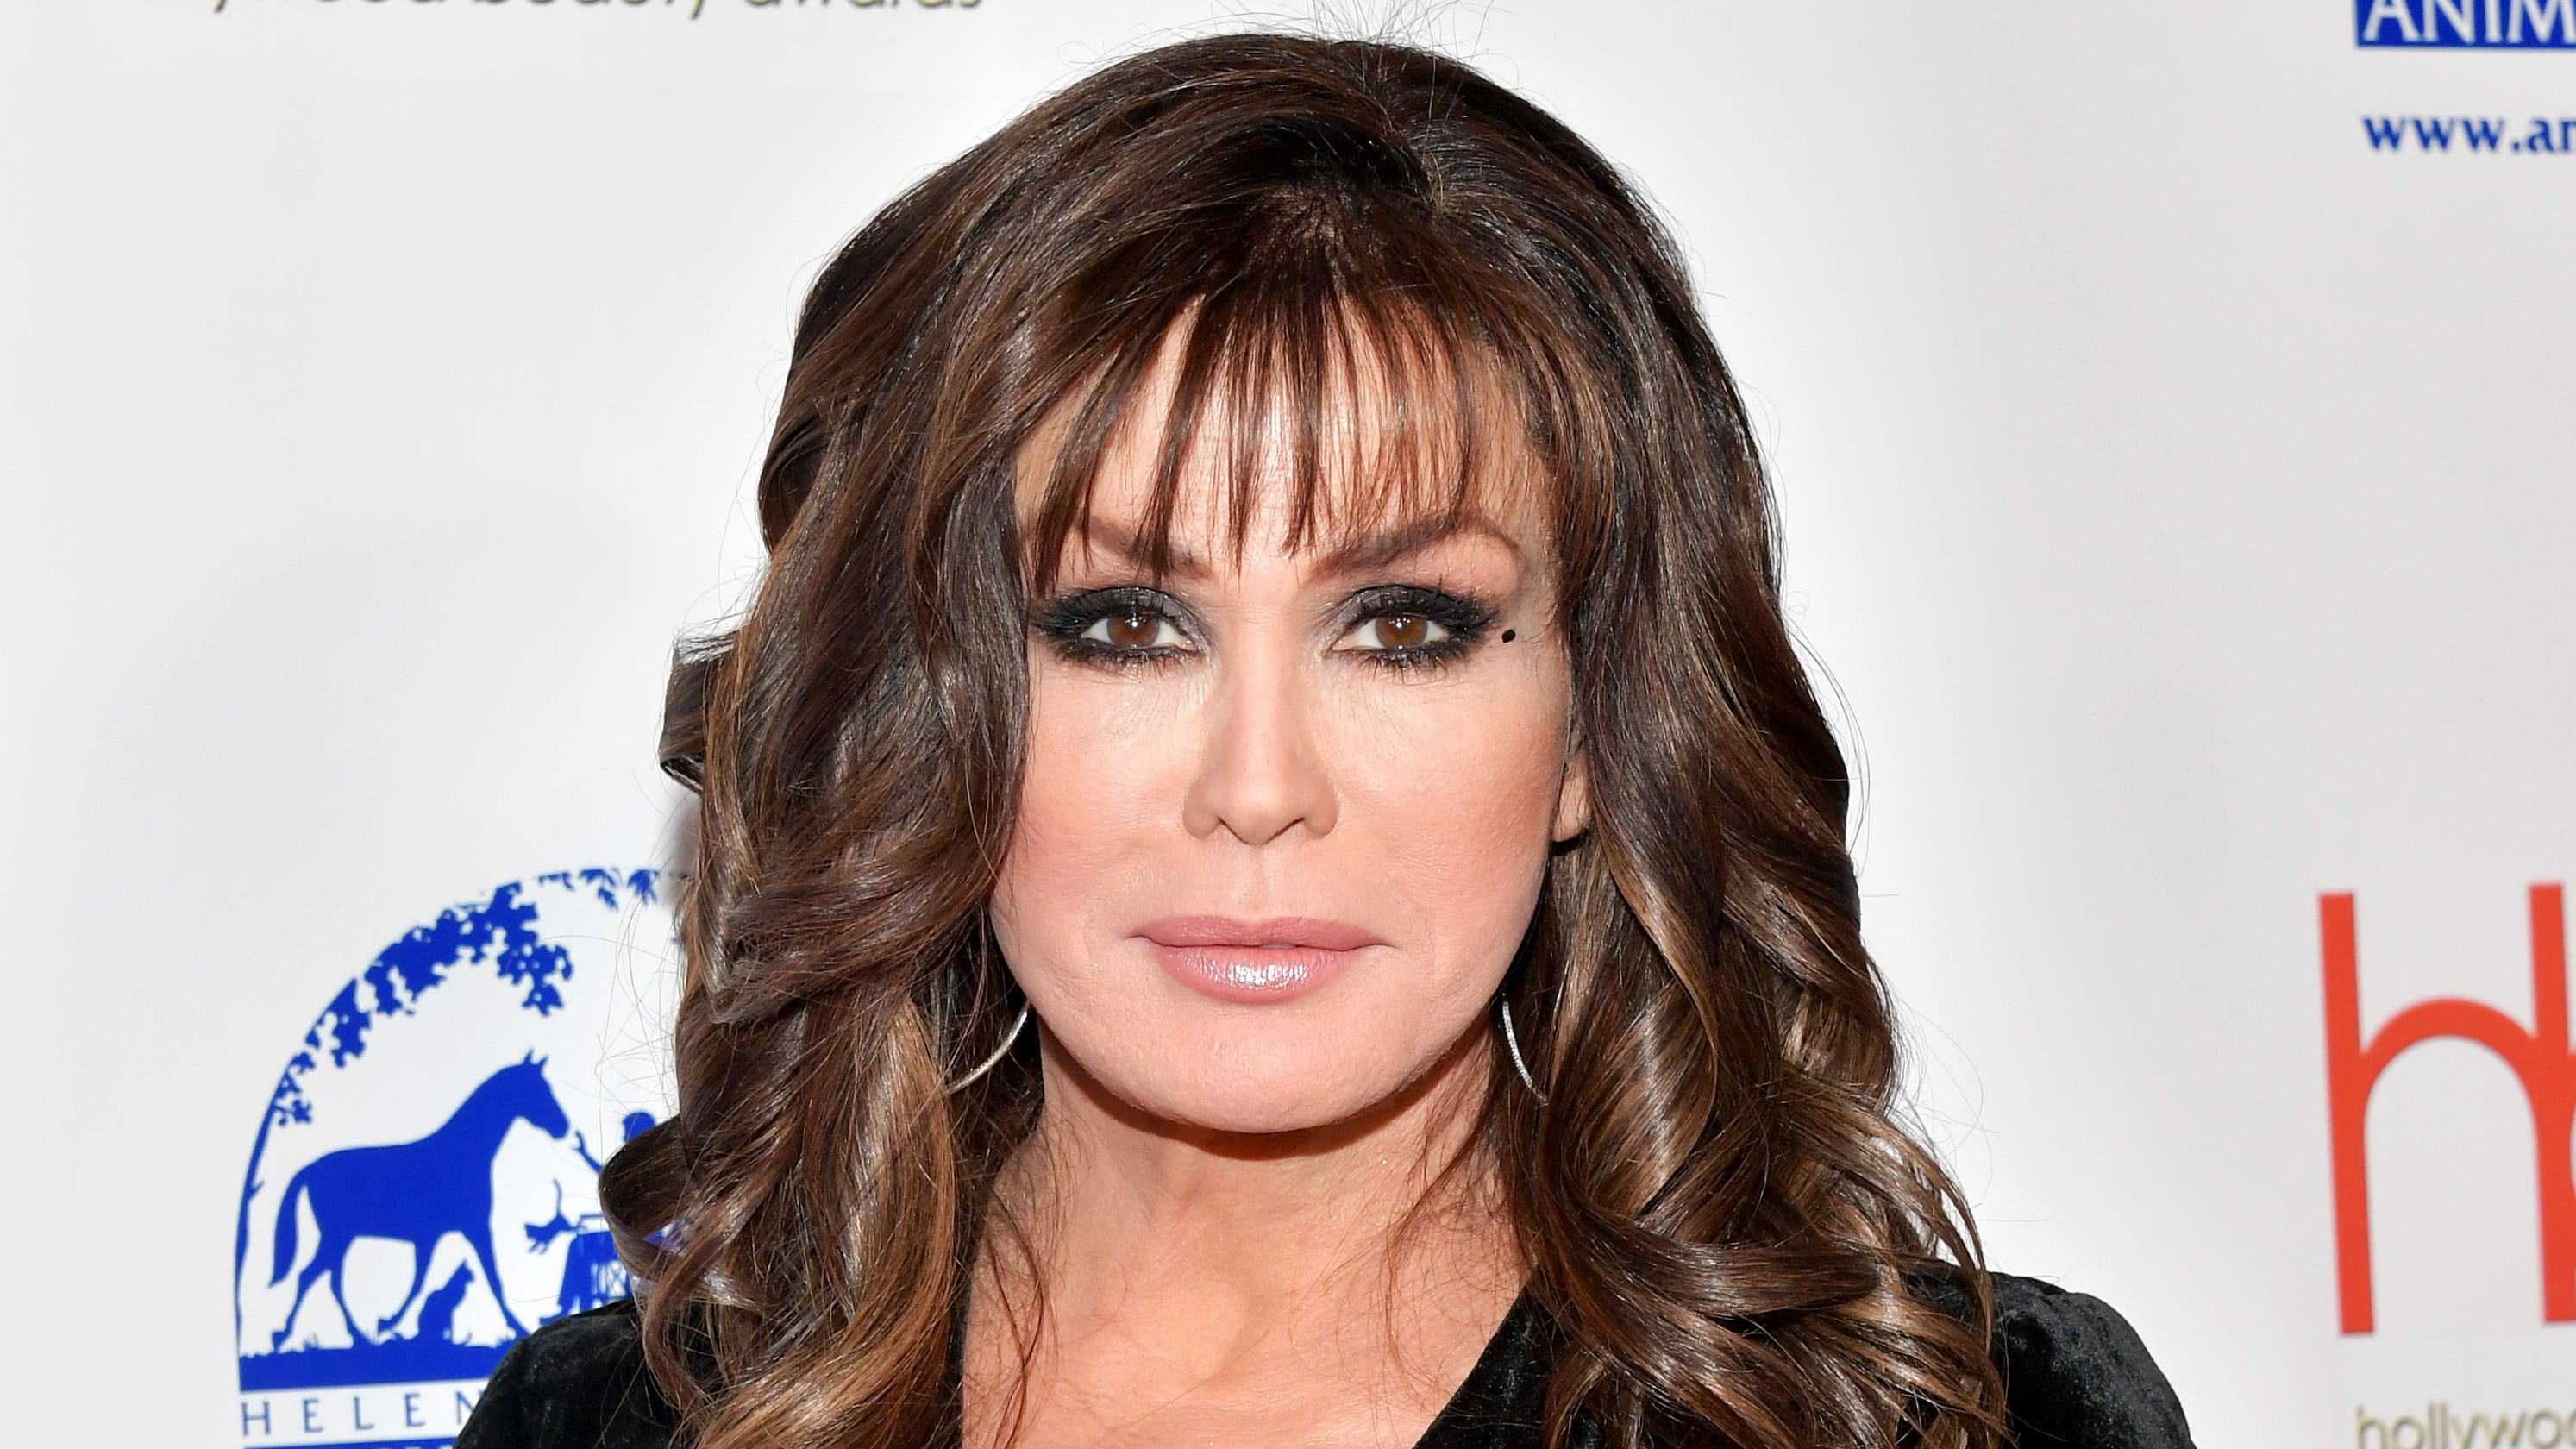 Marie Osmond Says Late Son Michael Blosil Was Bullied Very